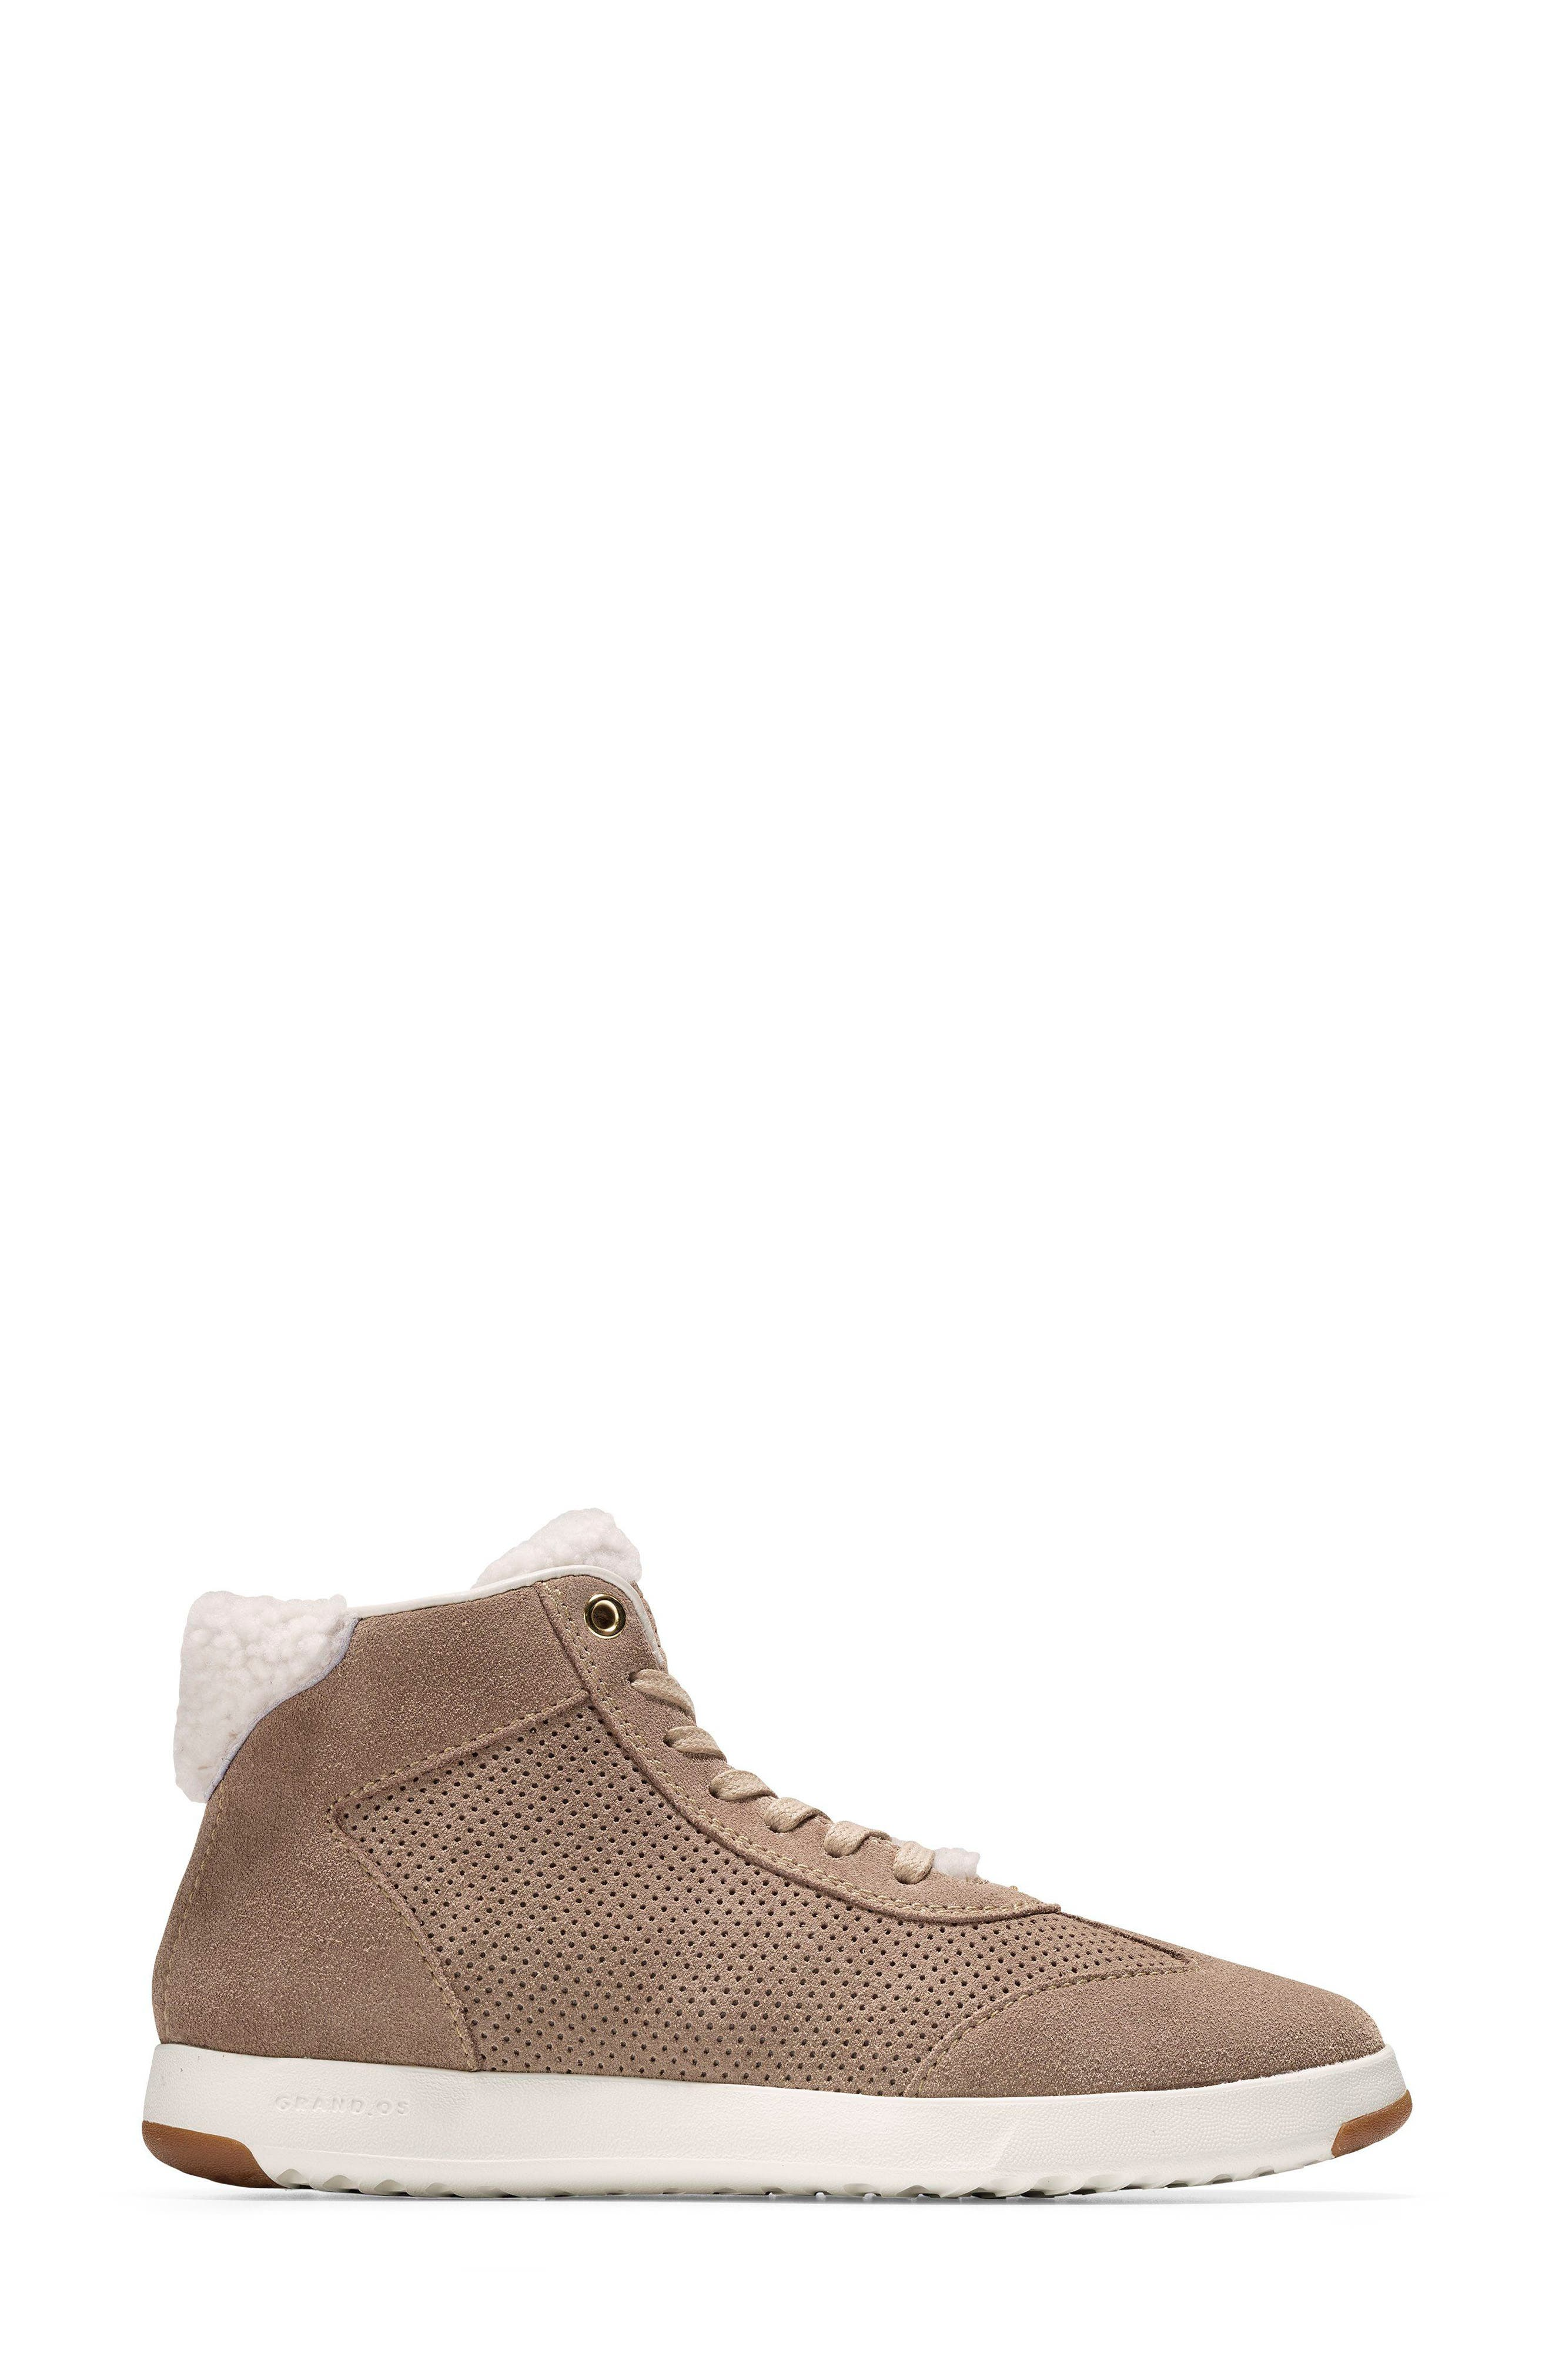 GrandPro High Top Sneaker,                             Alternate thumbnail 3, color,                             Warm Sand Suede